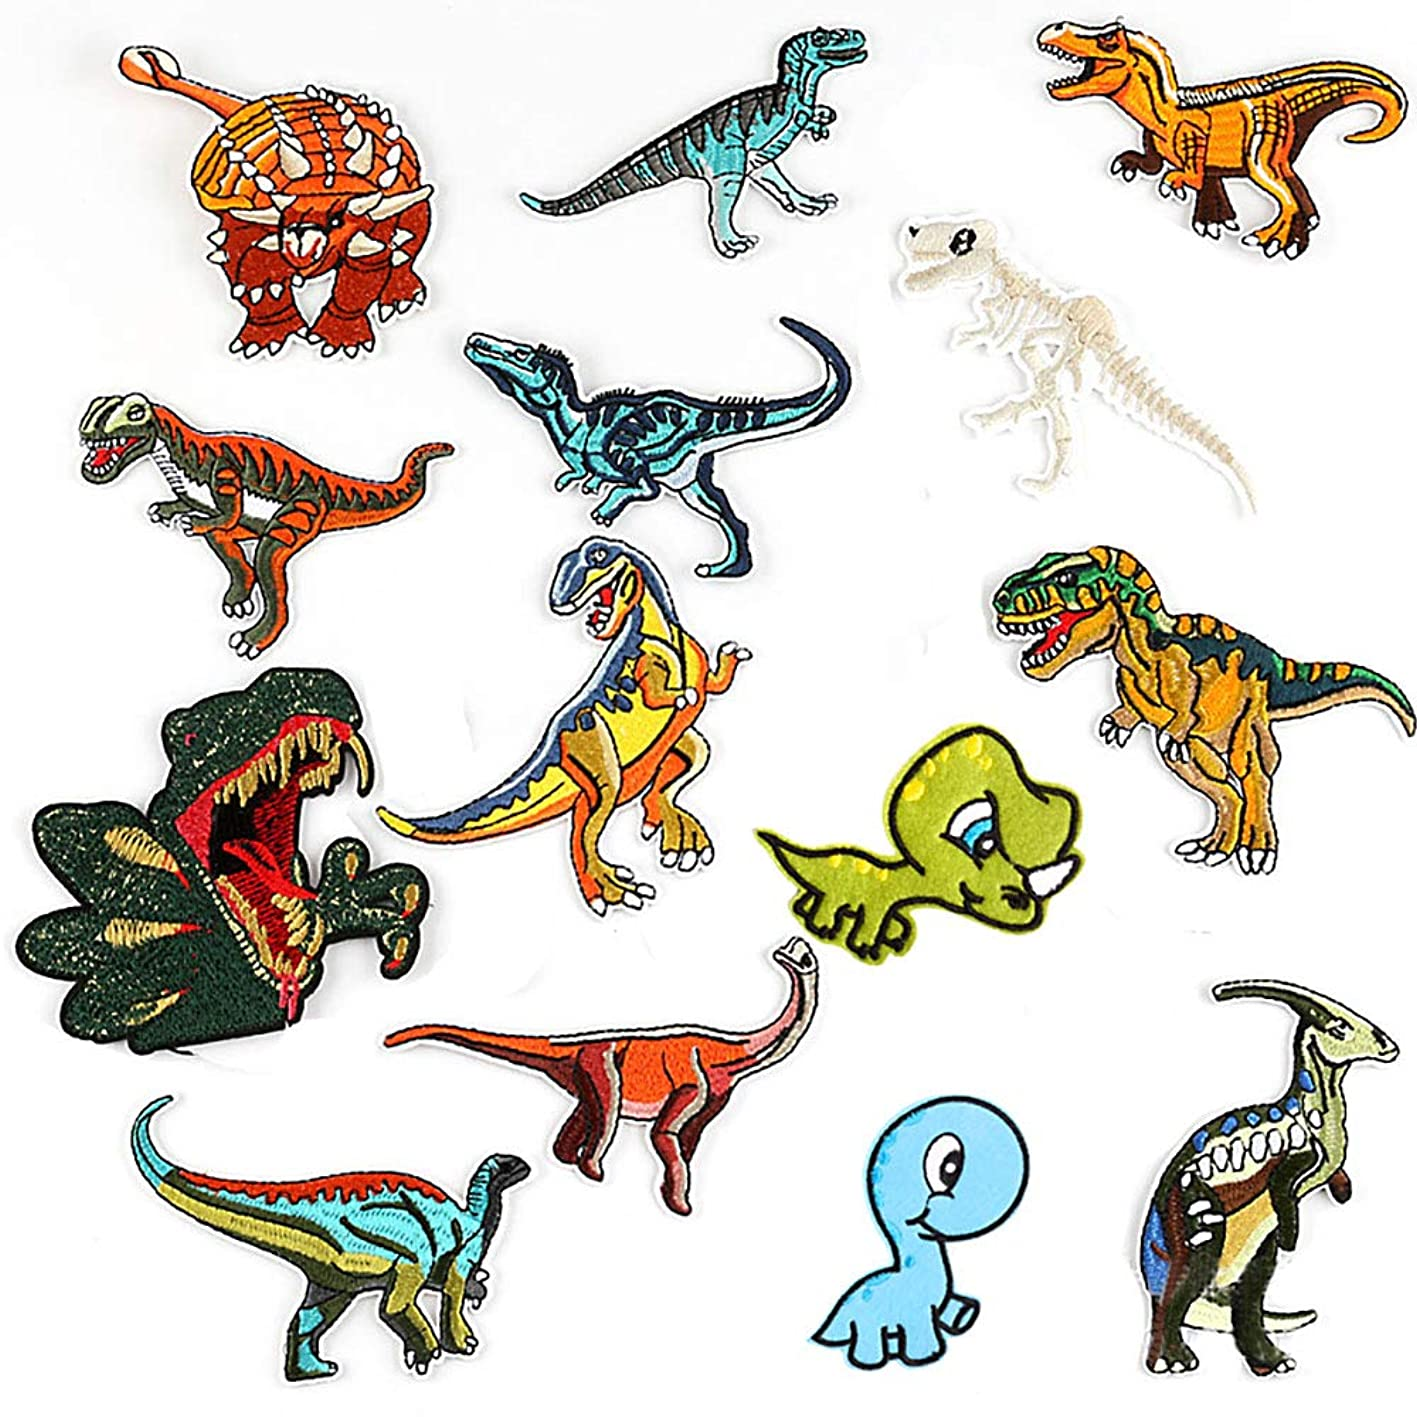 Dinosaur Iron on Patches, 14 Pieces Iron On Patches Embroidered Dinosaur Patches Decoration Sew On Patchesfor DIY Jeans Jacket, Clothing, Handbag psiyybkejdh011